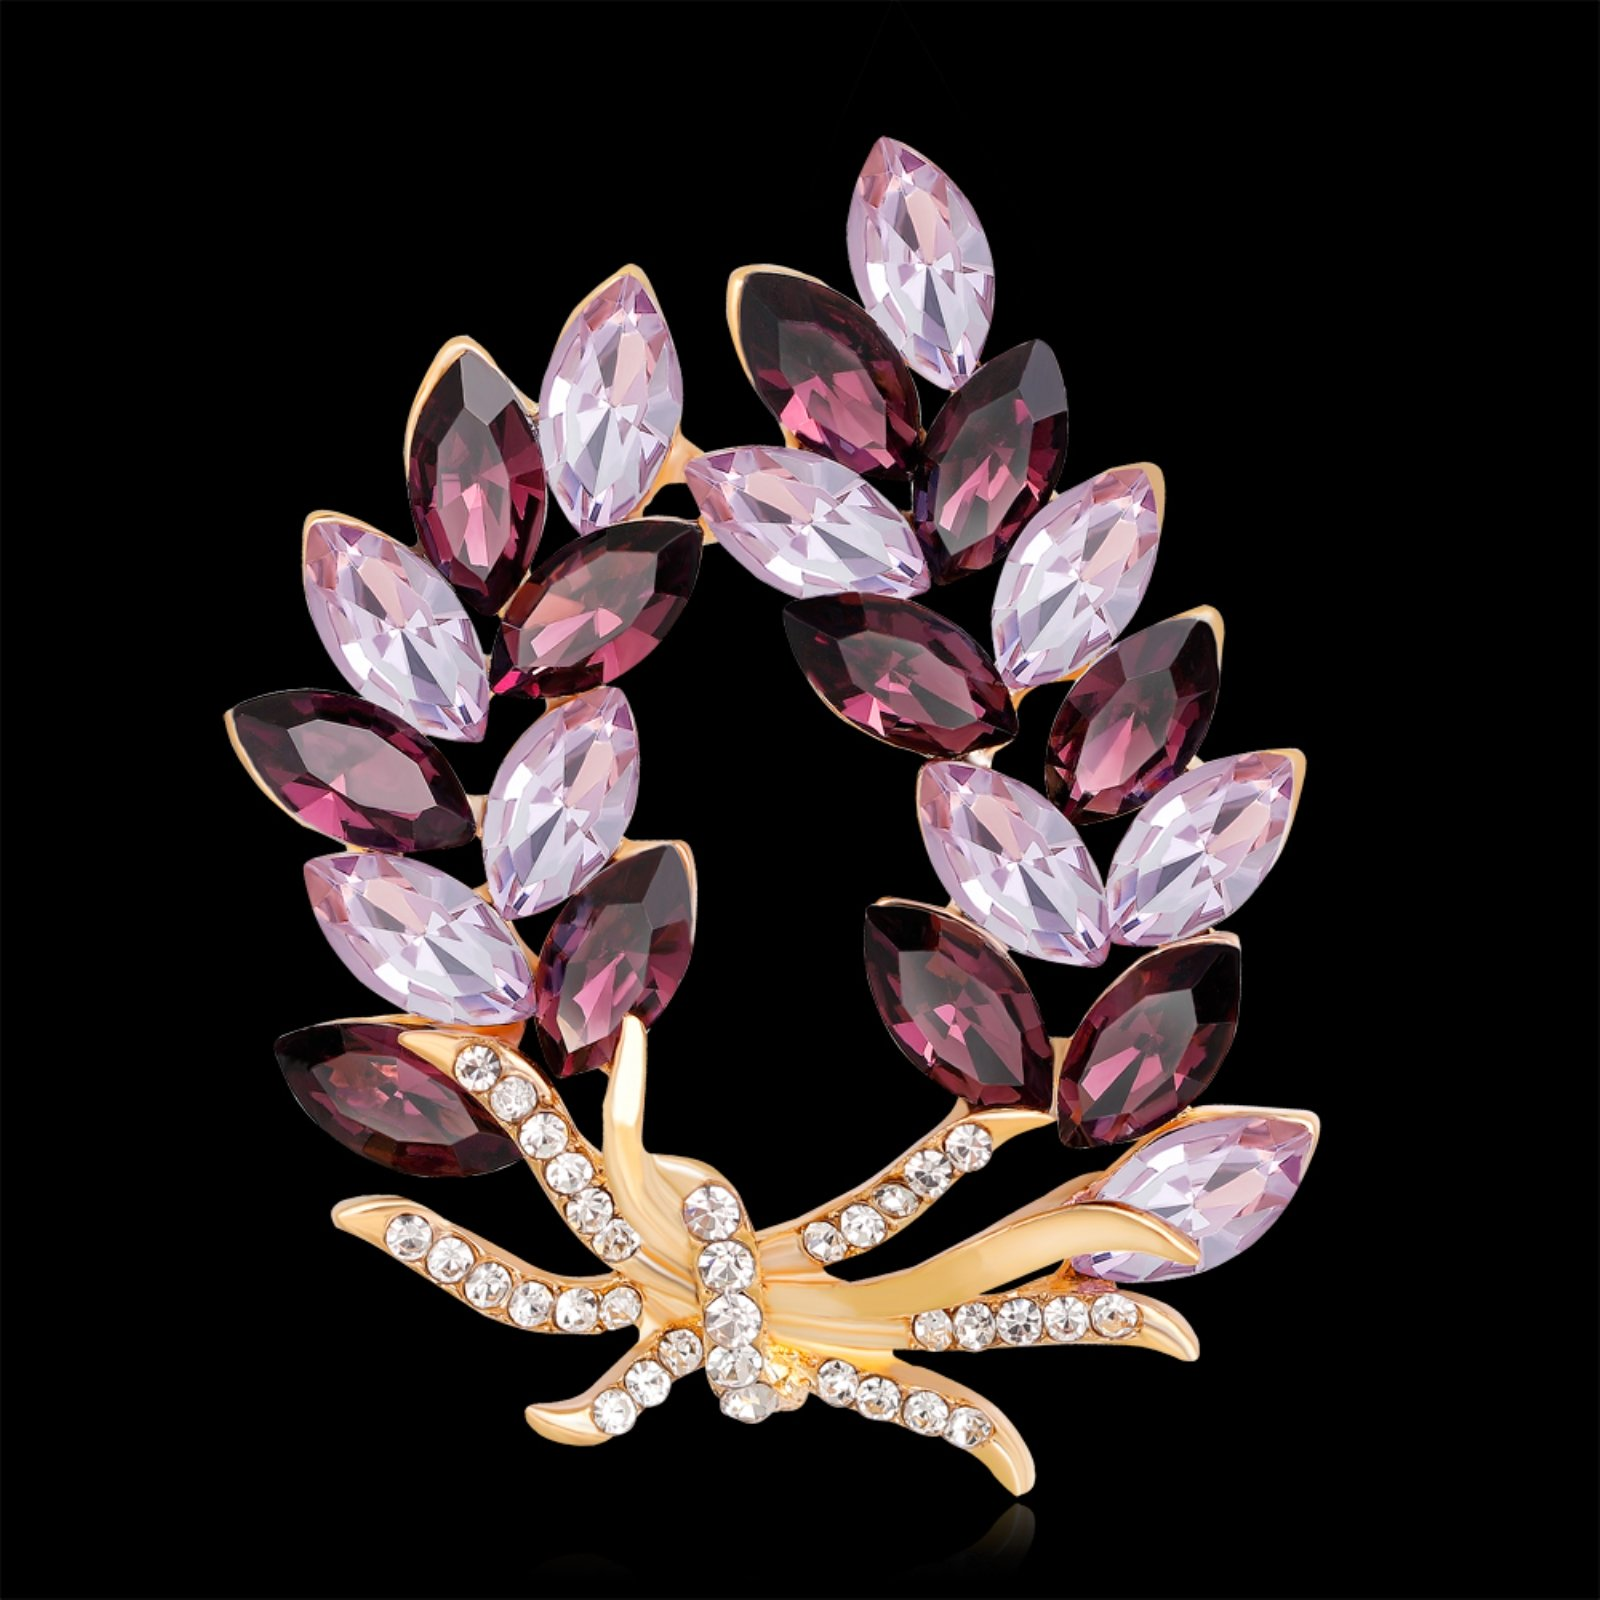 ptk12 Coat Accessories Purple Crystal Flower Casual Party Bouquets Rhinestone Brooch by ptk12 (Image #5)